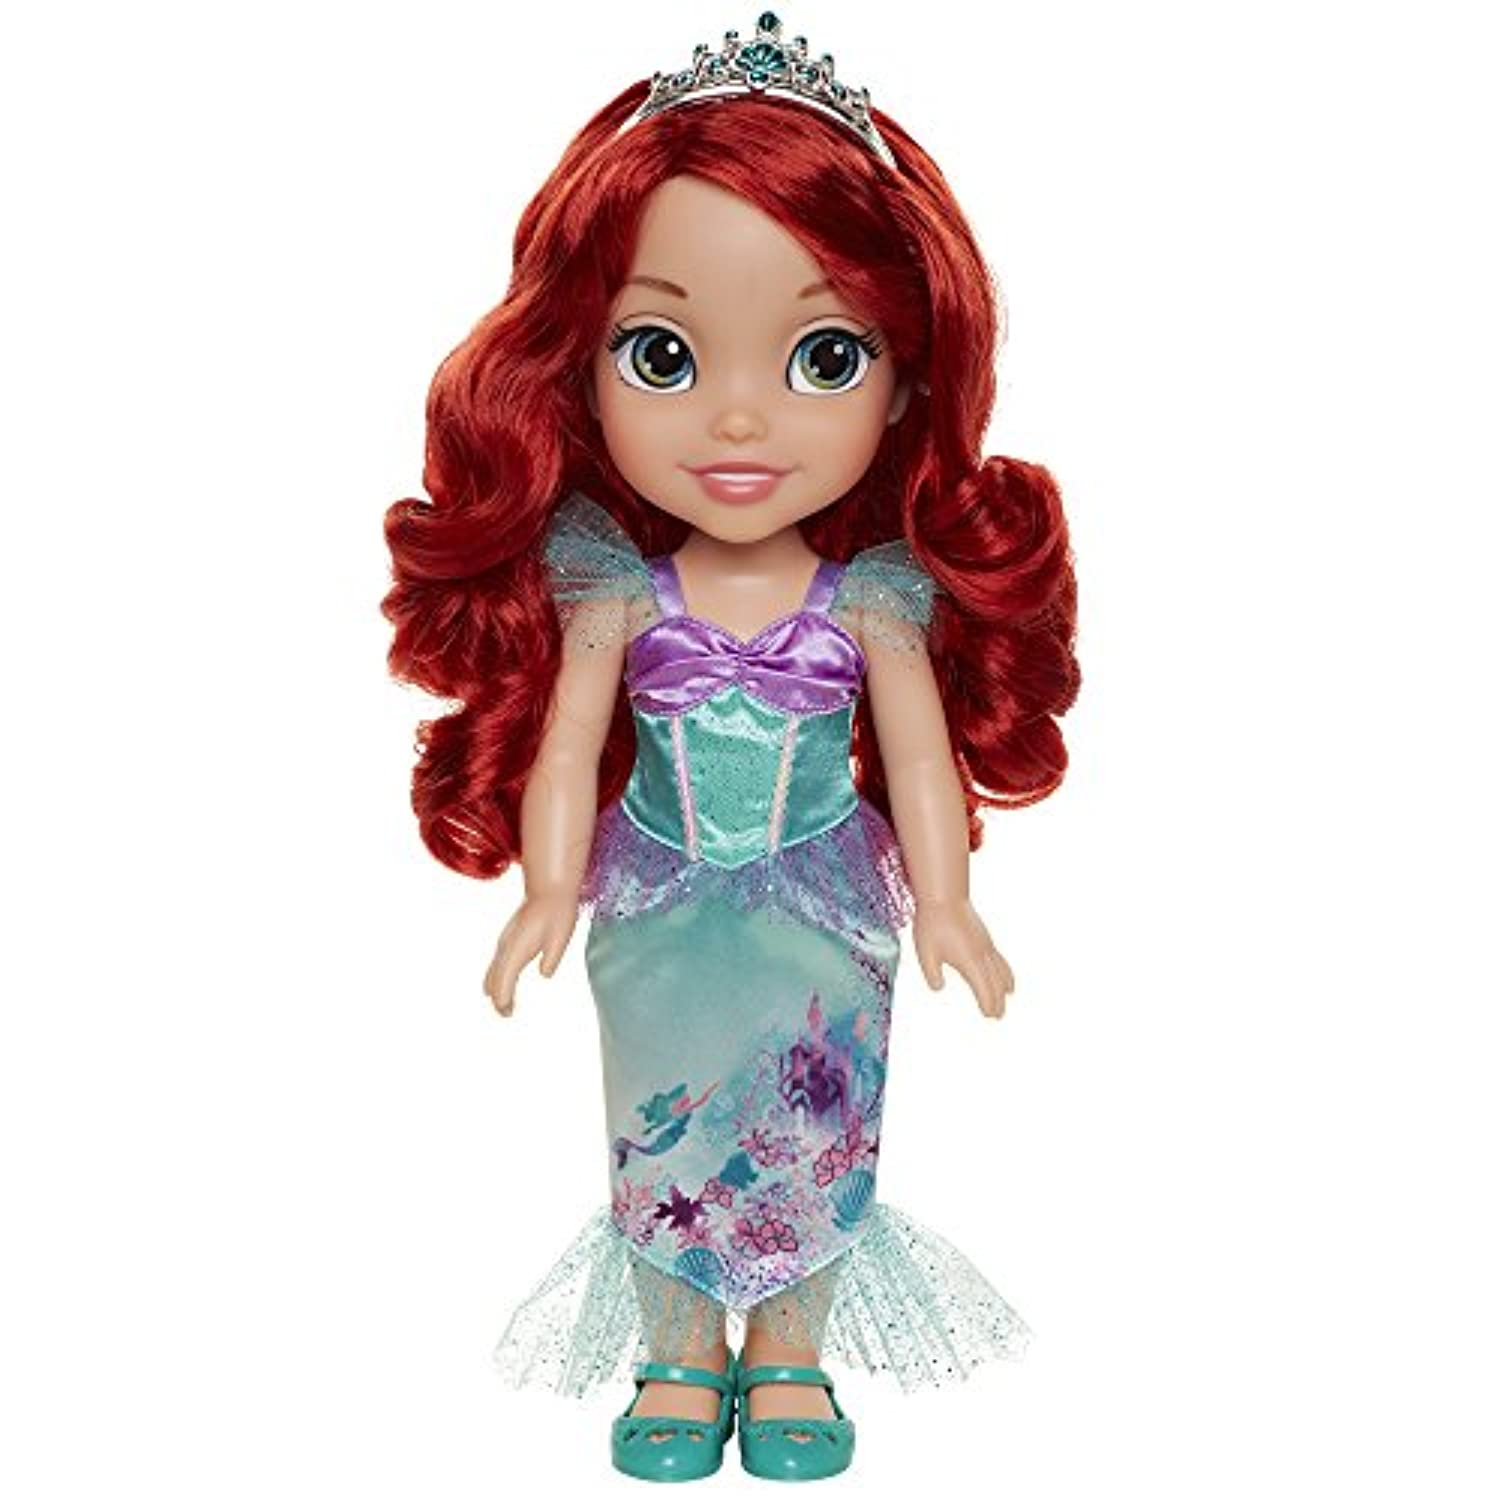 Disney Princess Ariel Toddler Doll by Disney Princess